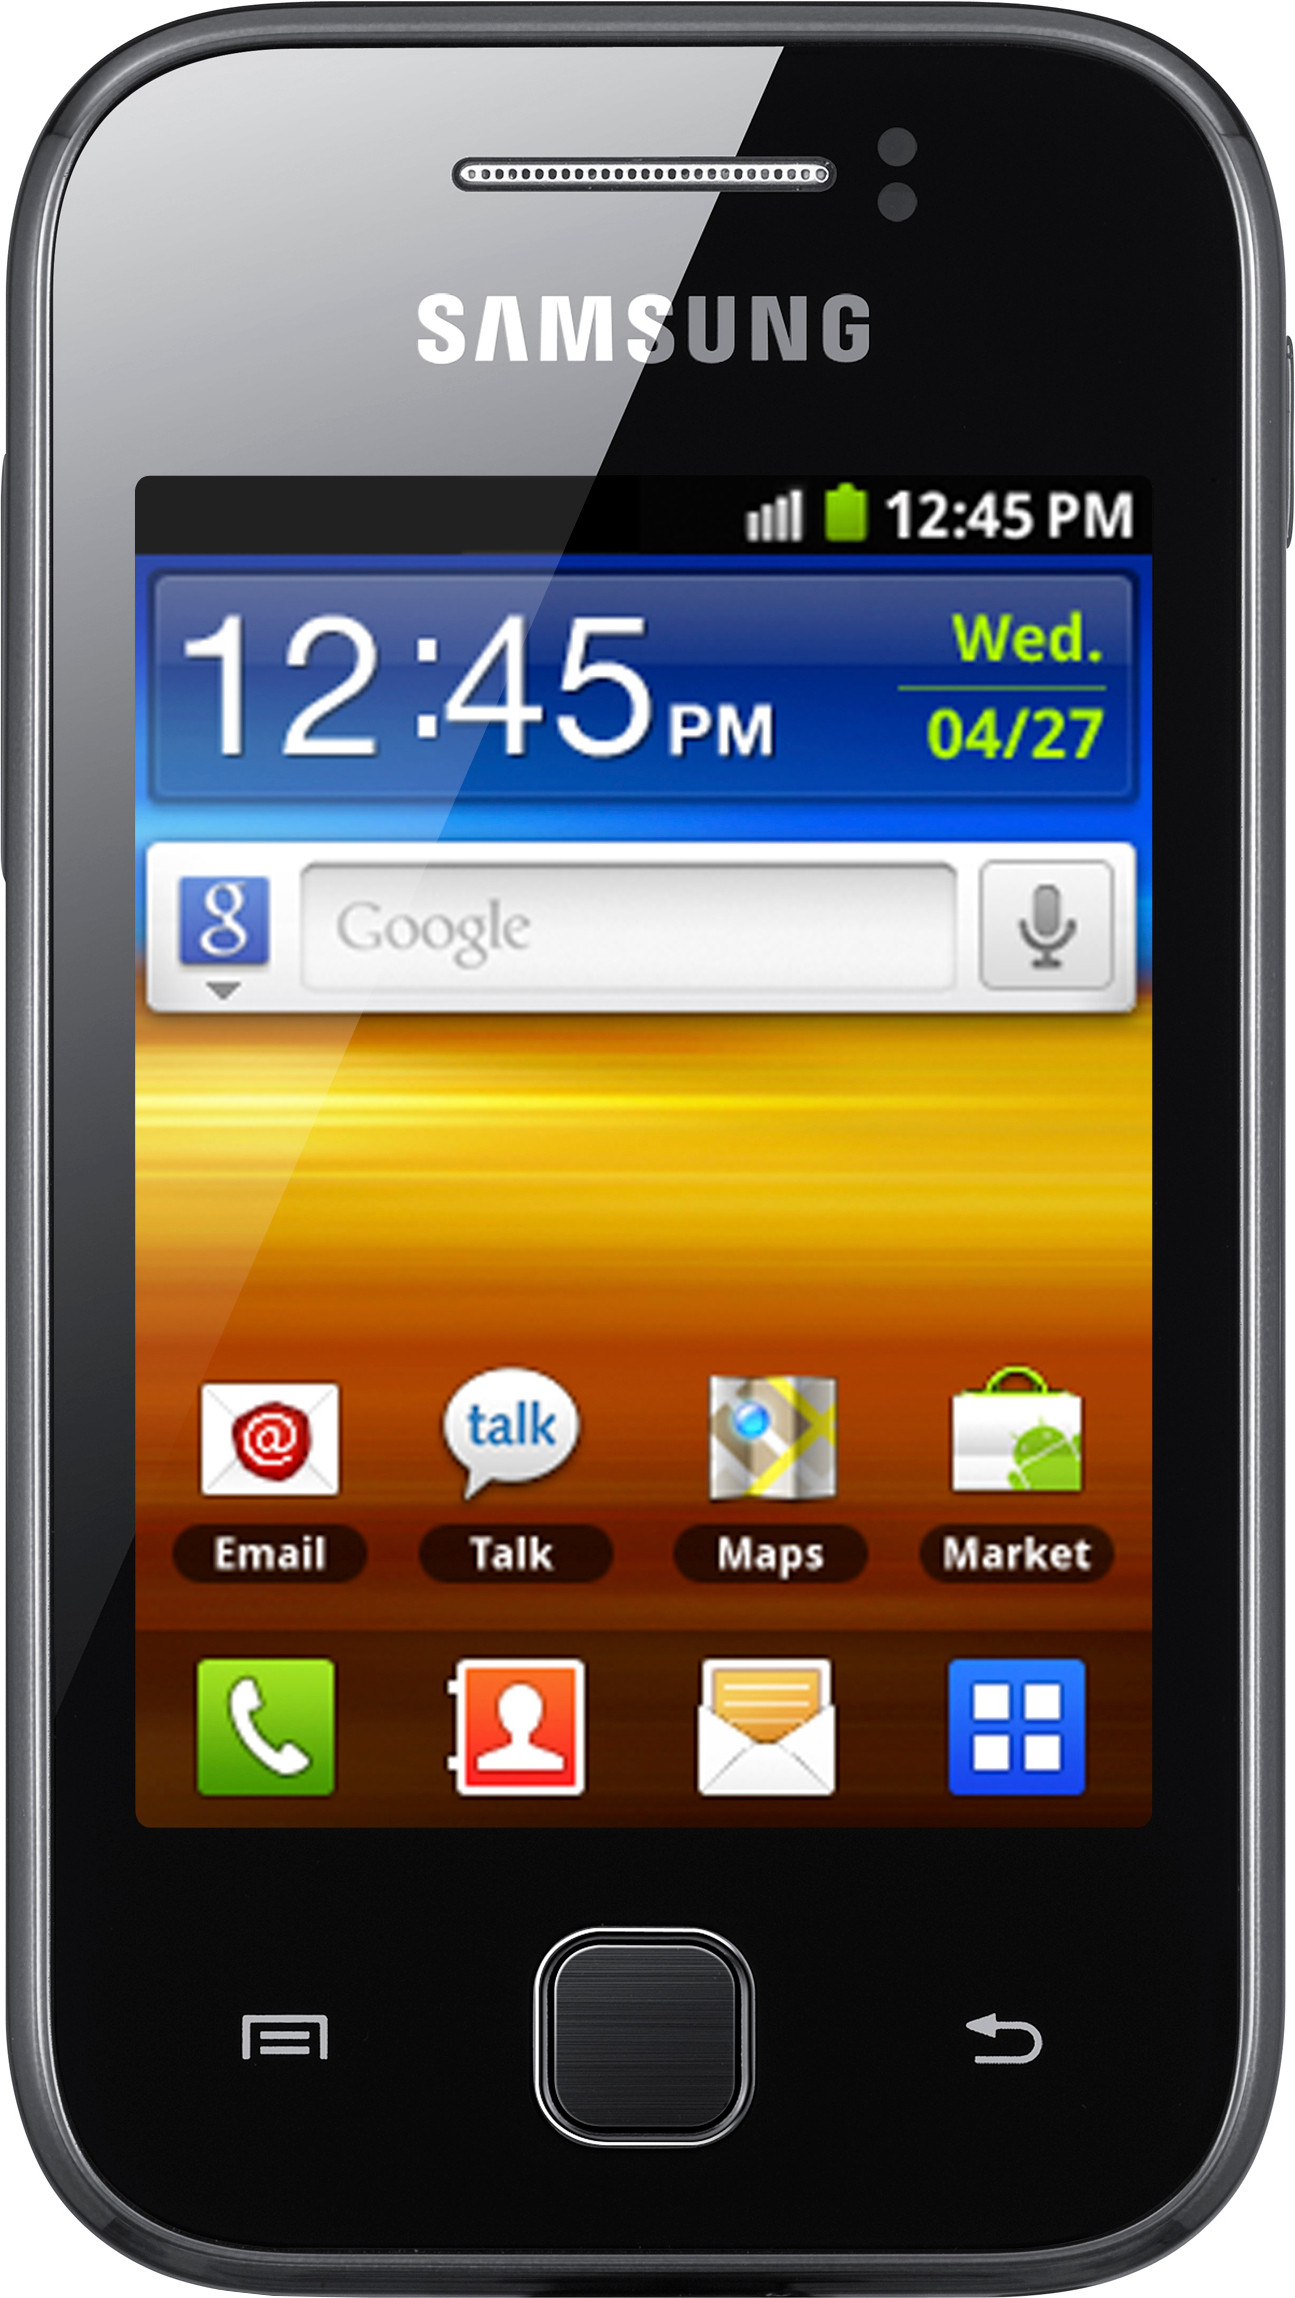 Samsung Galaxy Y S5360 (160MB RAM, 2GB)